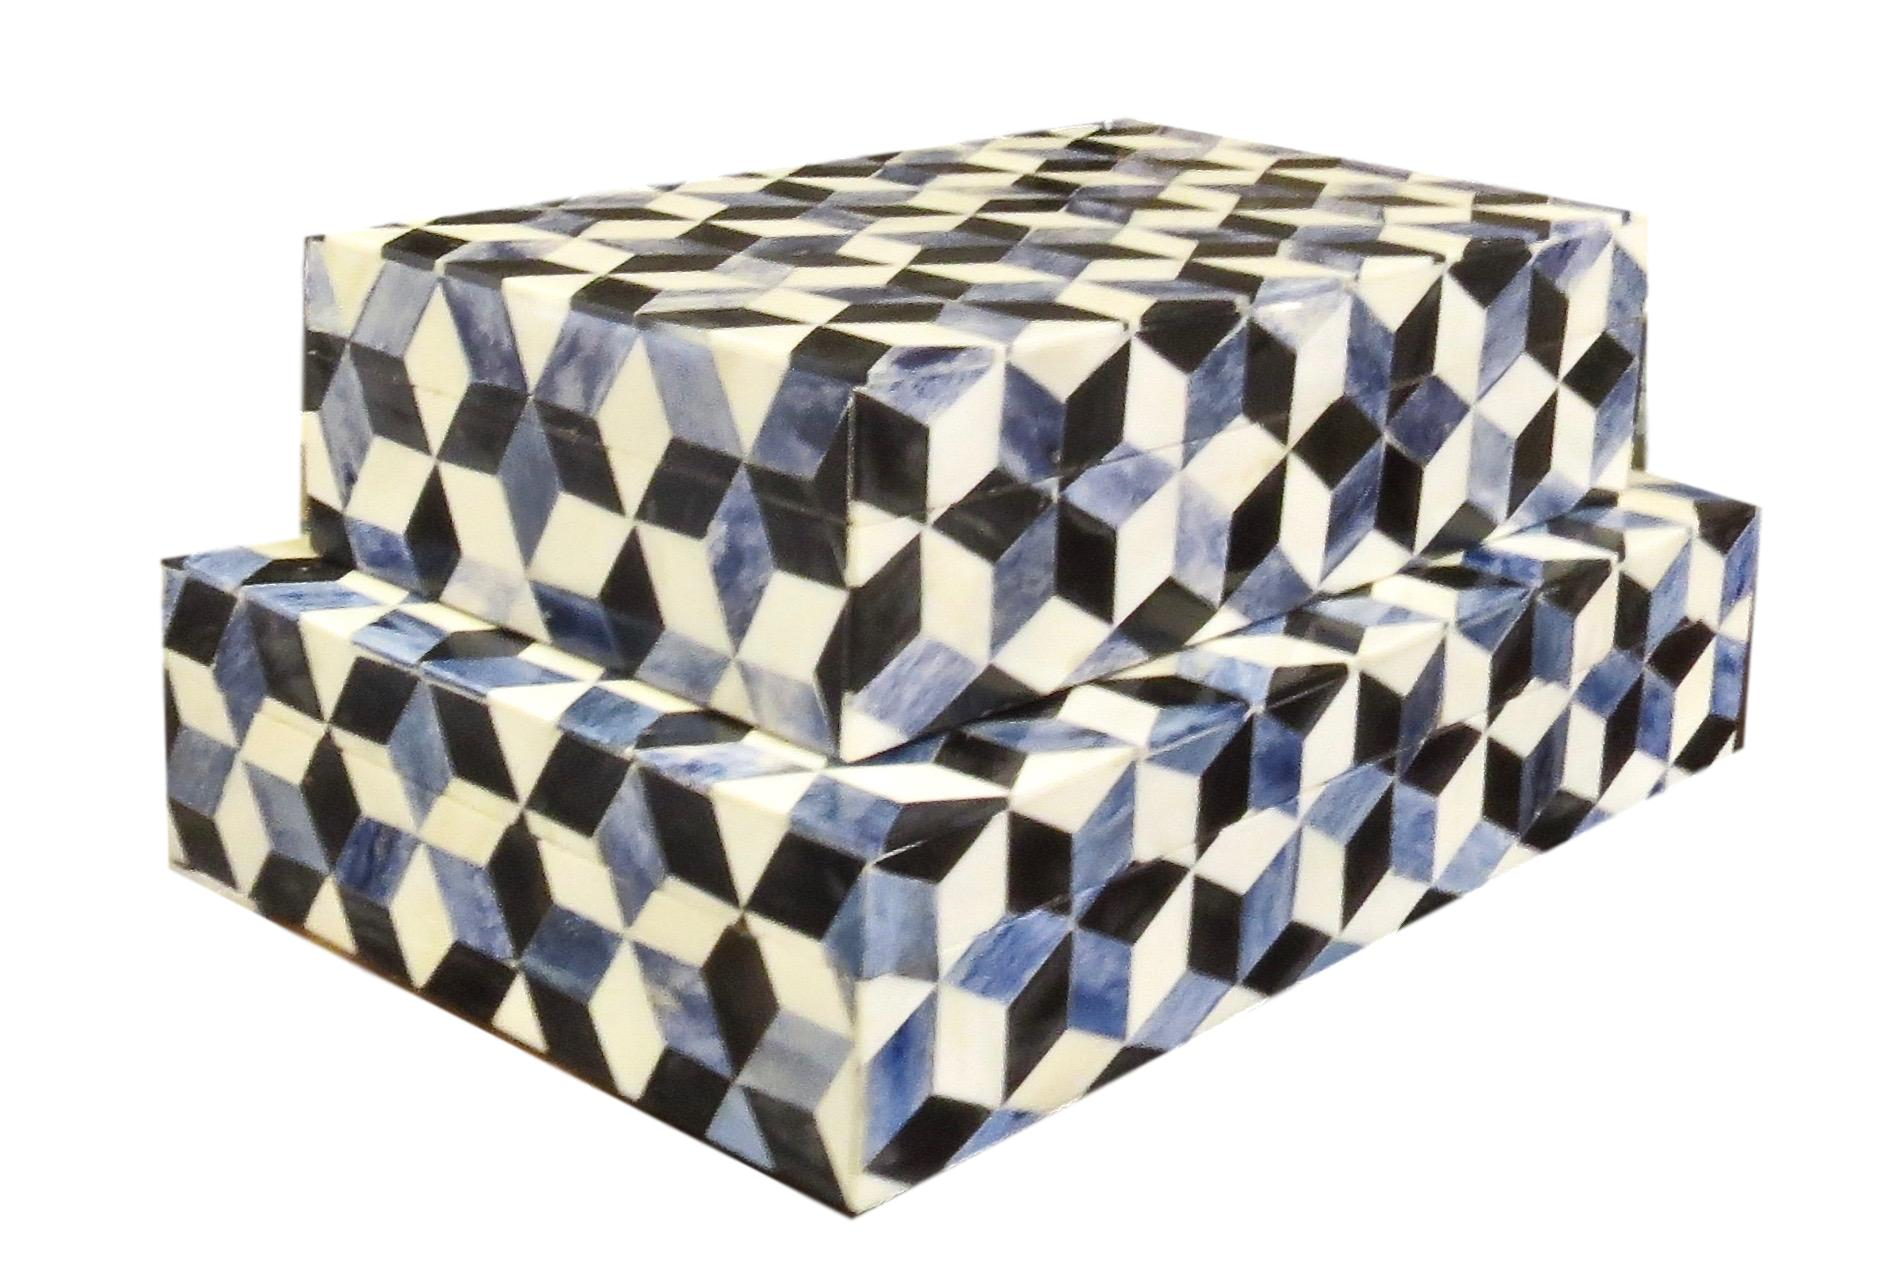 Escher Bone Box Blue/White Black  Large 14x9x3h BIJ980L  Small 12x7x3h BIJ980S